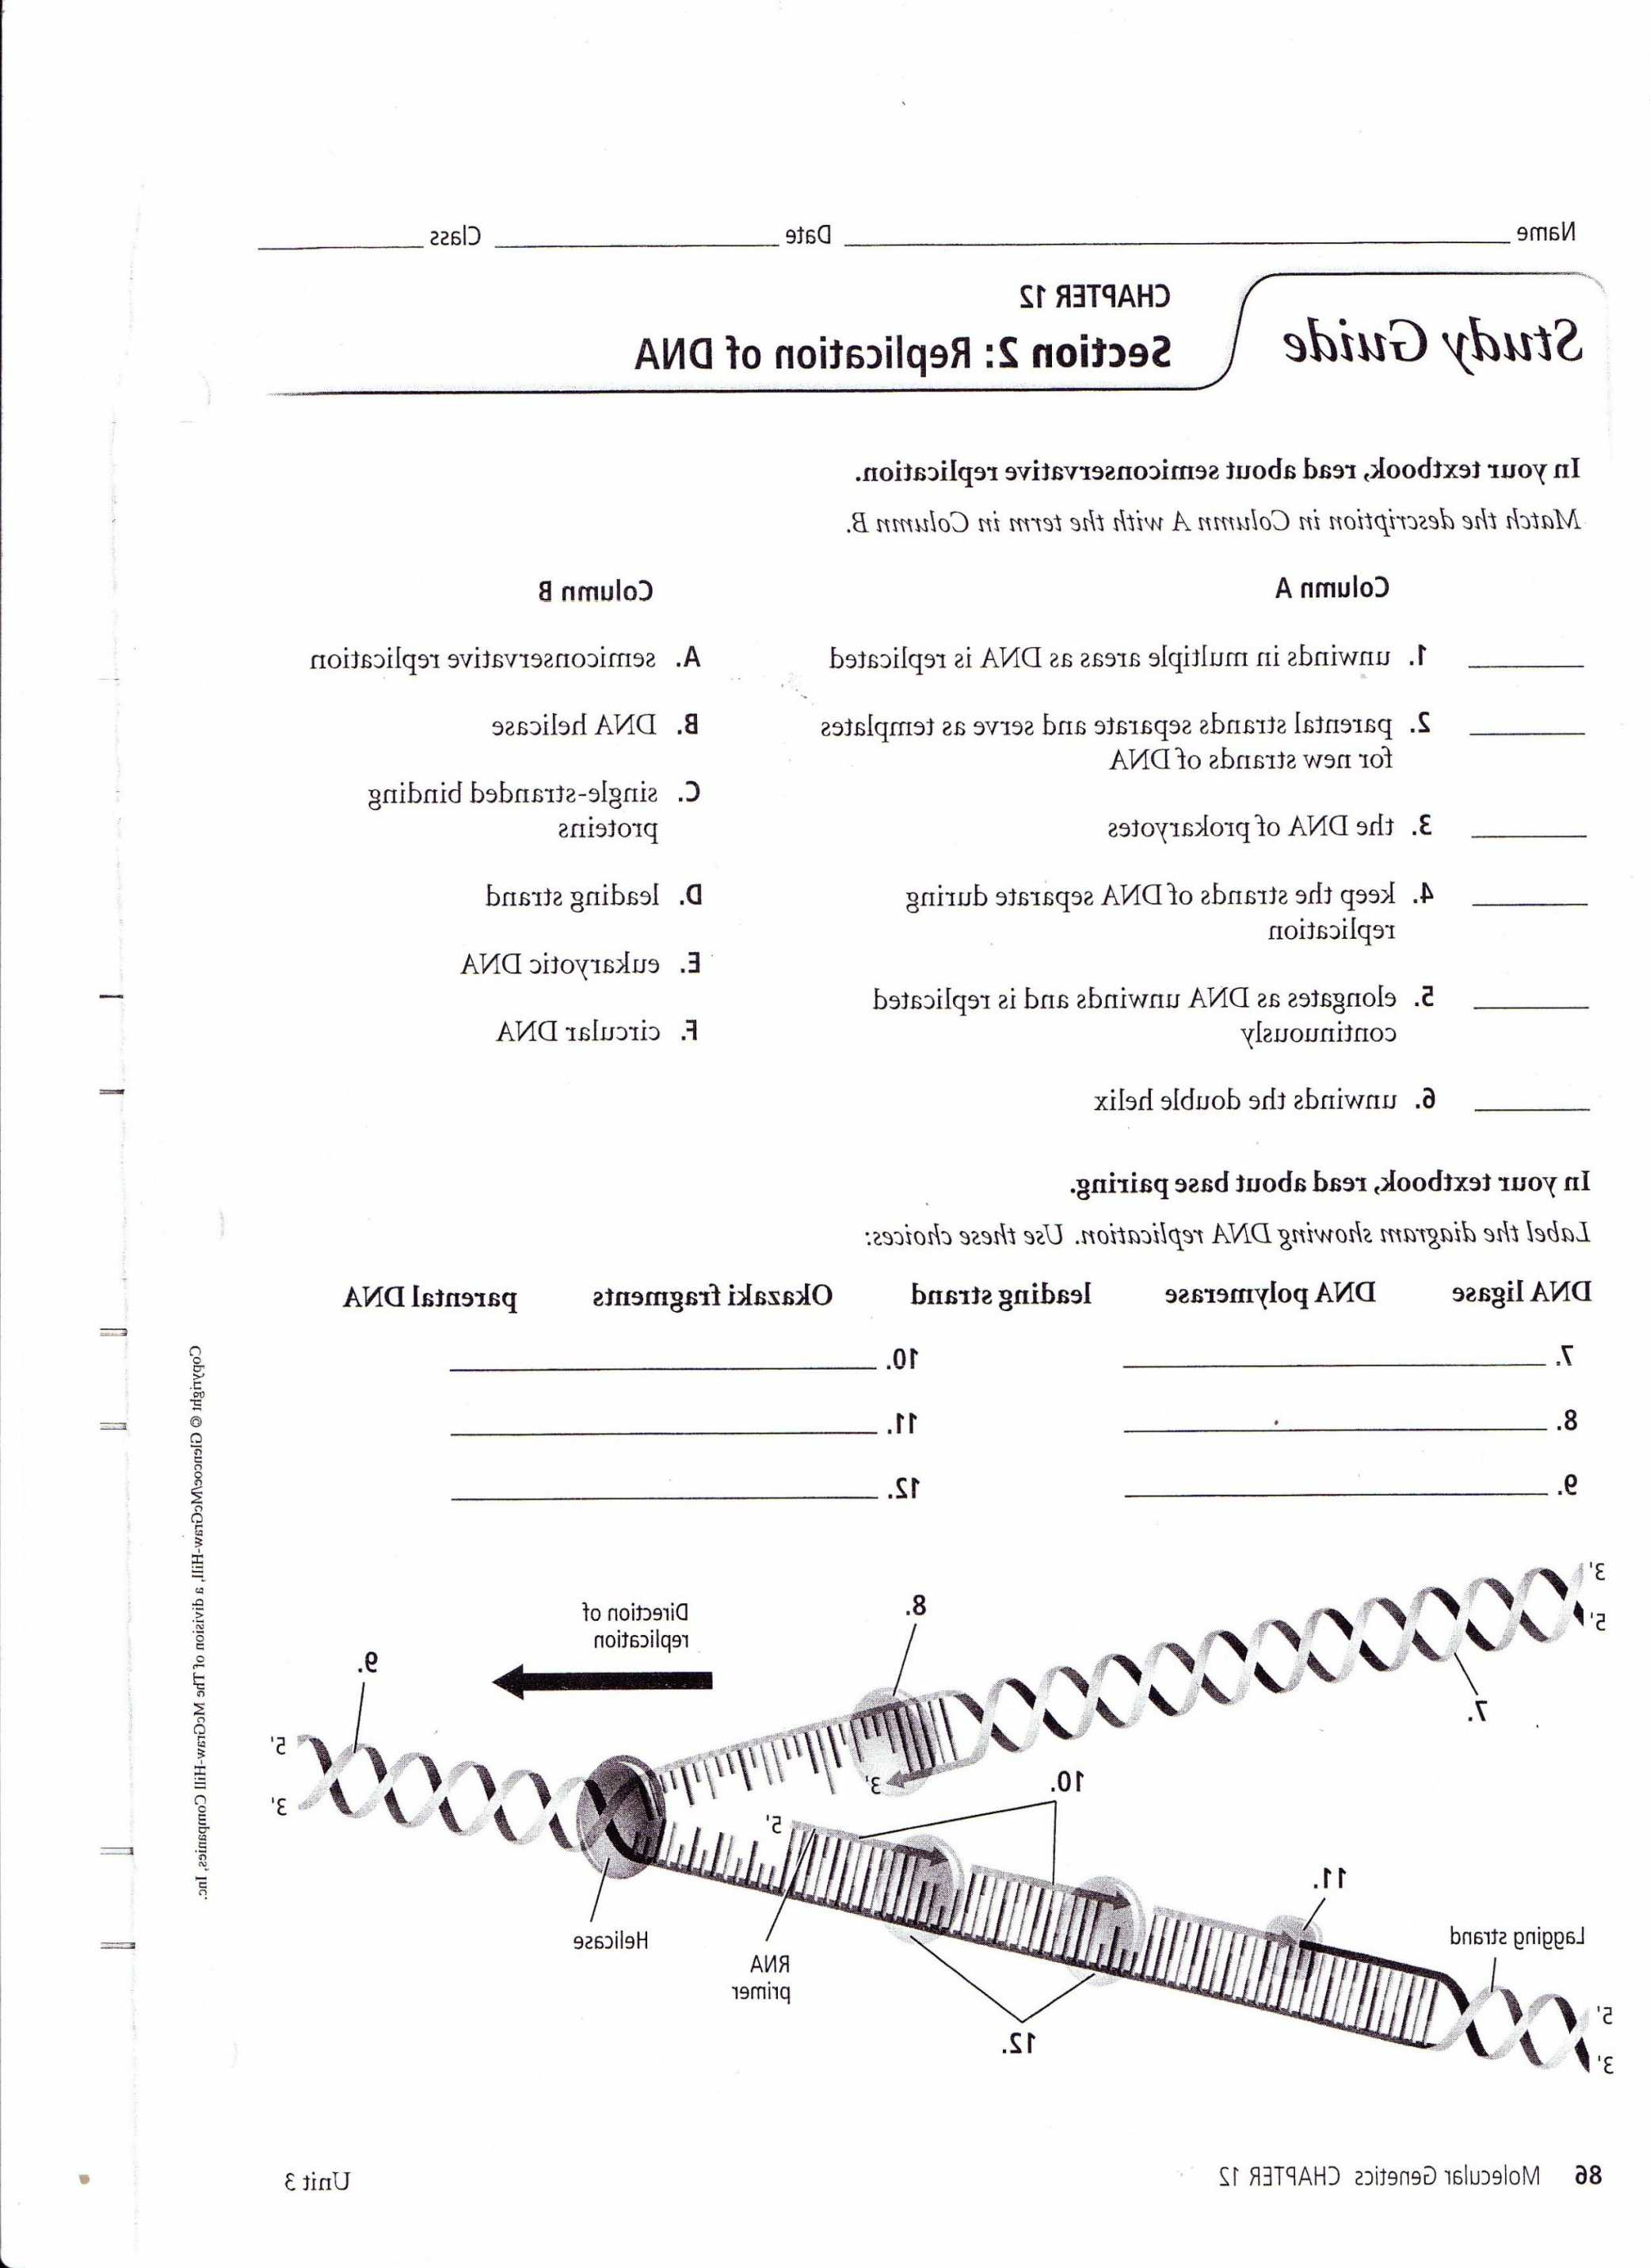 Transcription Worksheet Answer Key with Worksheet Dna Replication Worksheet Key Concept Dna Replication